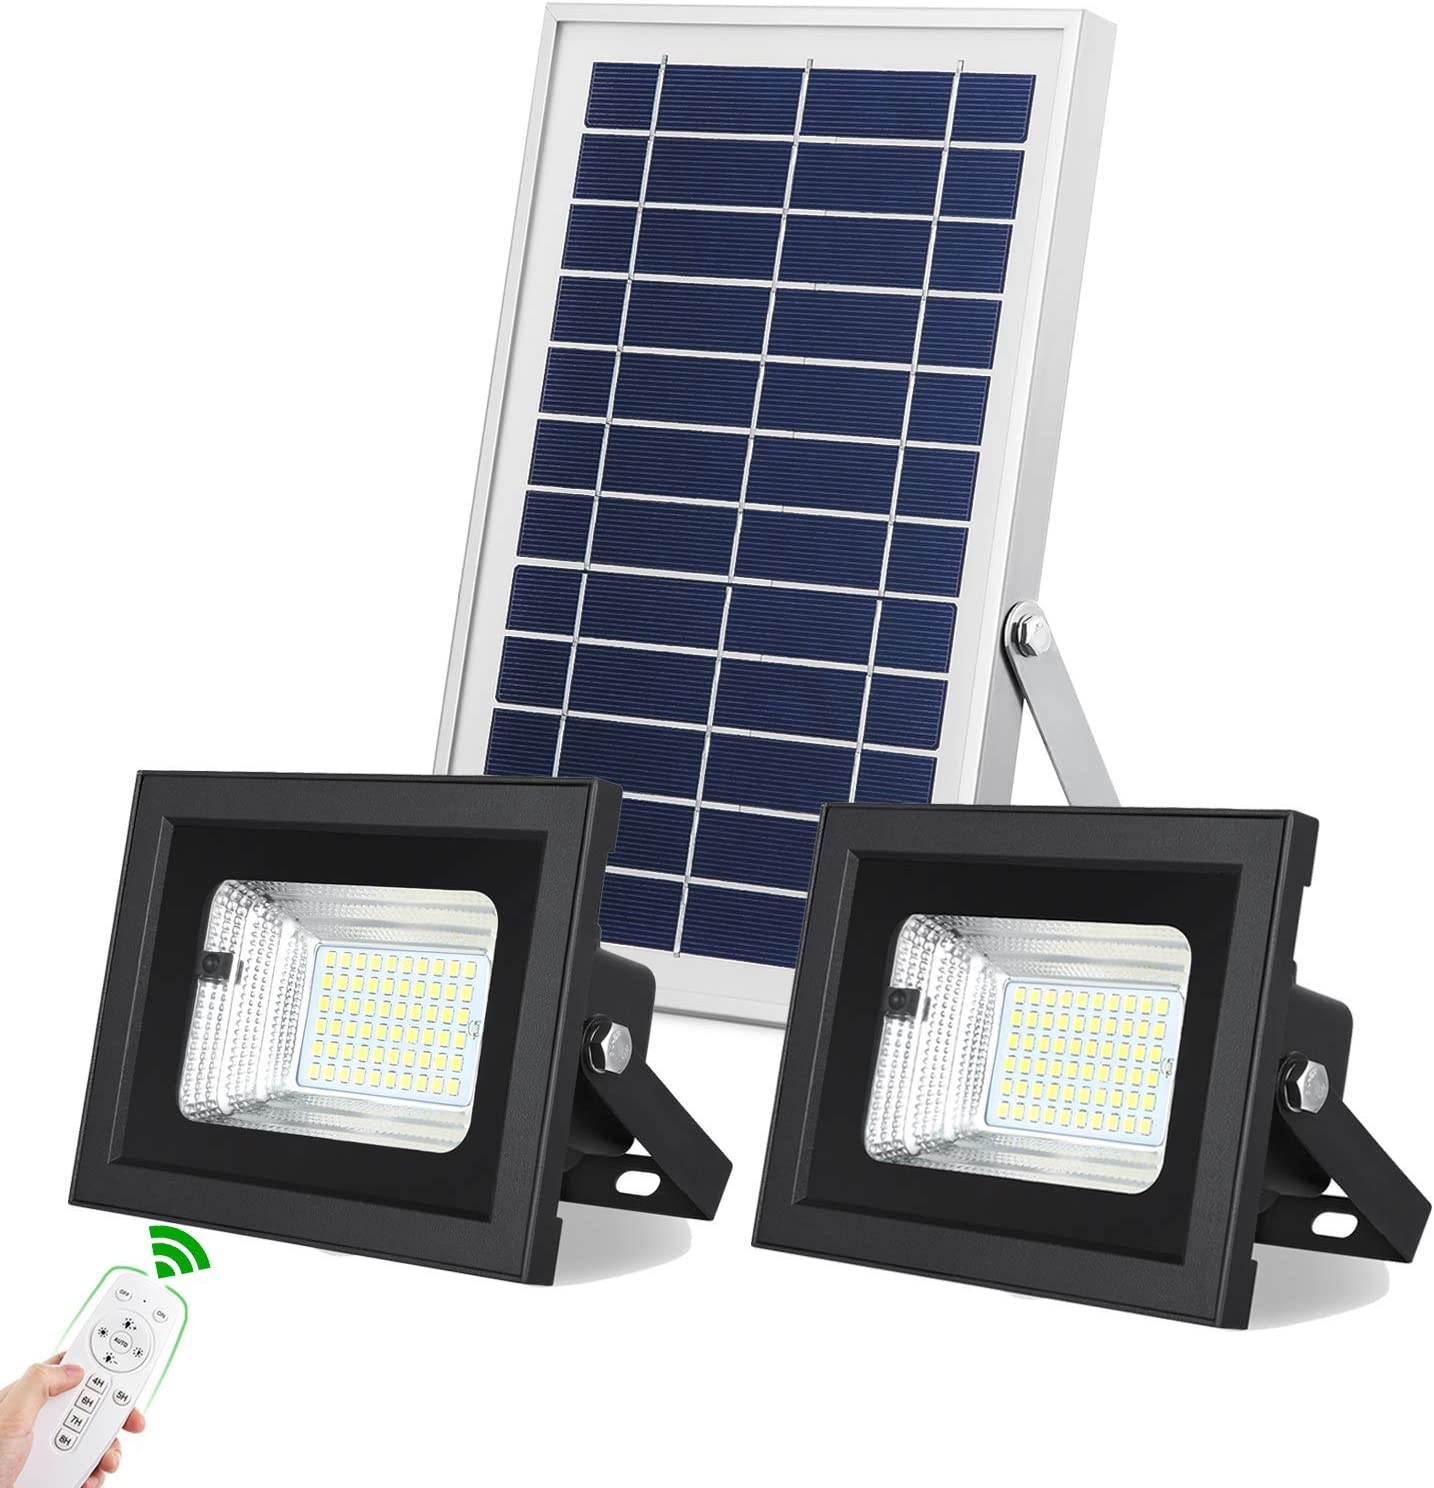 Solar Flood Lights Outdoor/Indoor Dusk to Dawn Uponun Dual Head 60LED IP67 Waterproof Smart Remote Control Solar Powered Security Light for Yard Path Pool Patio Shed Sign Barn Garden Garage Driveway